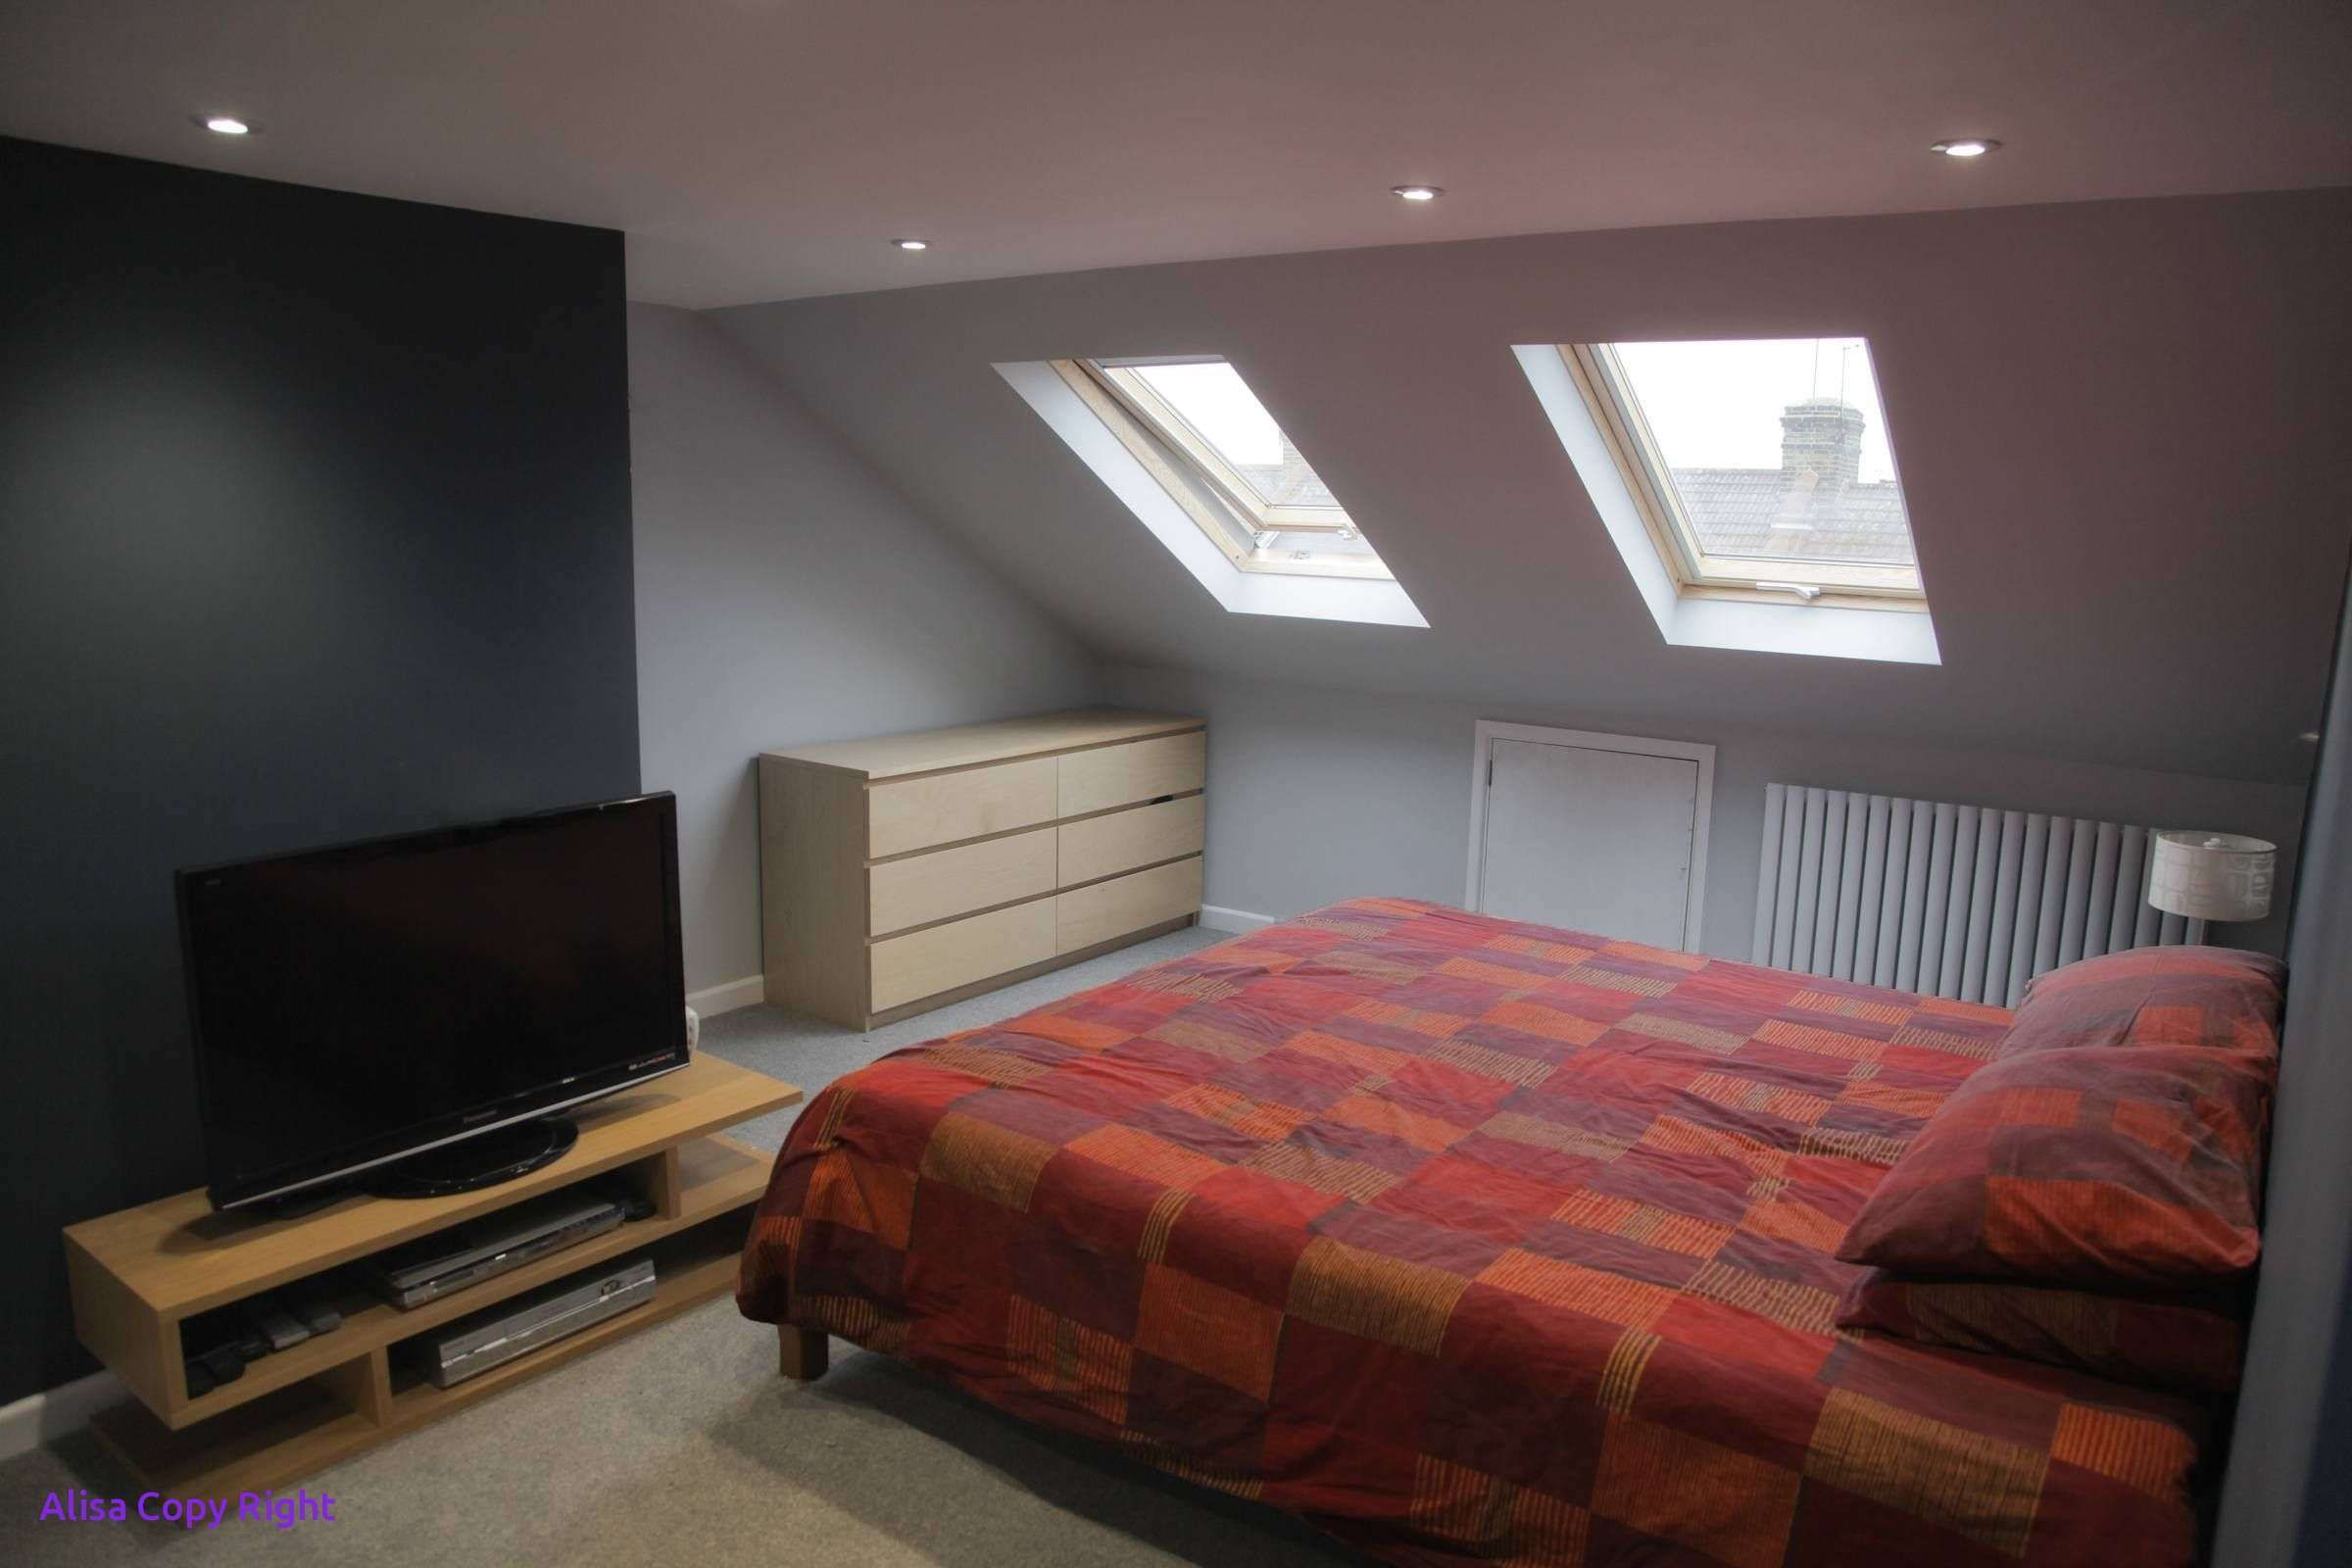 Low Ceiling Attic Bedroom Ideas Homedecoration Homedecorations